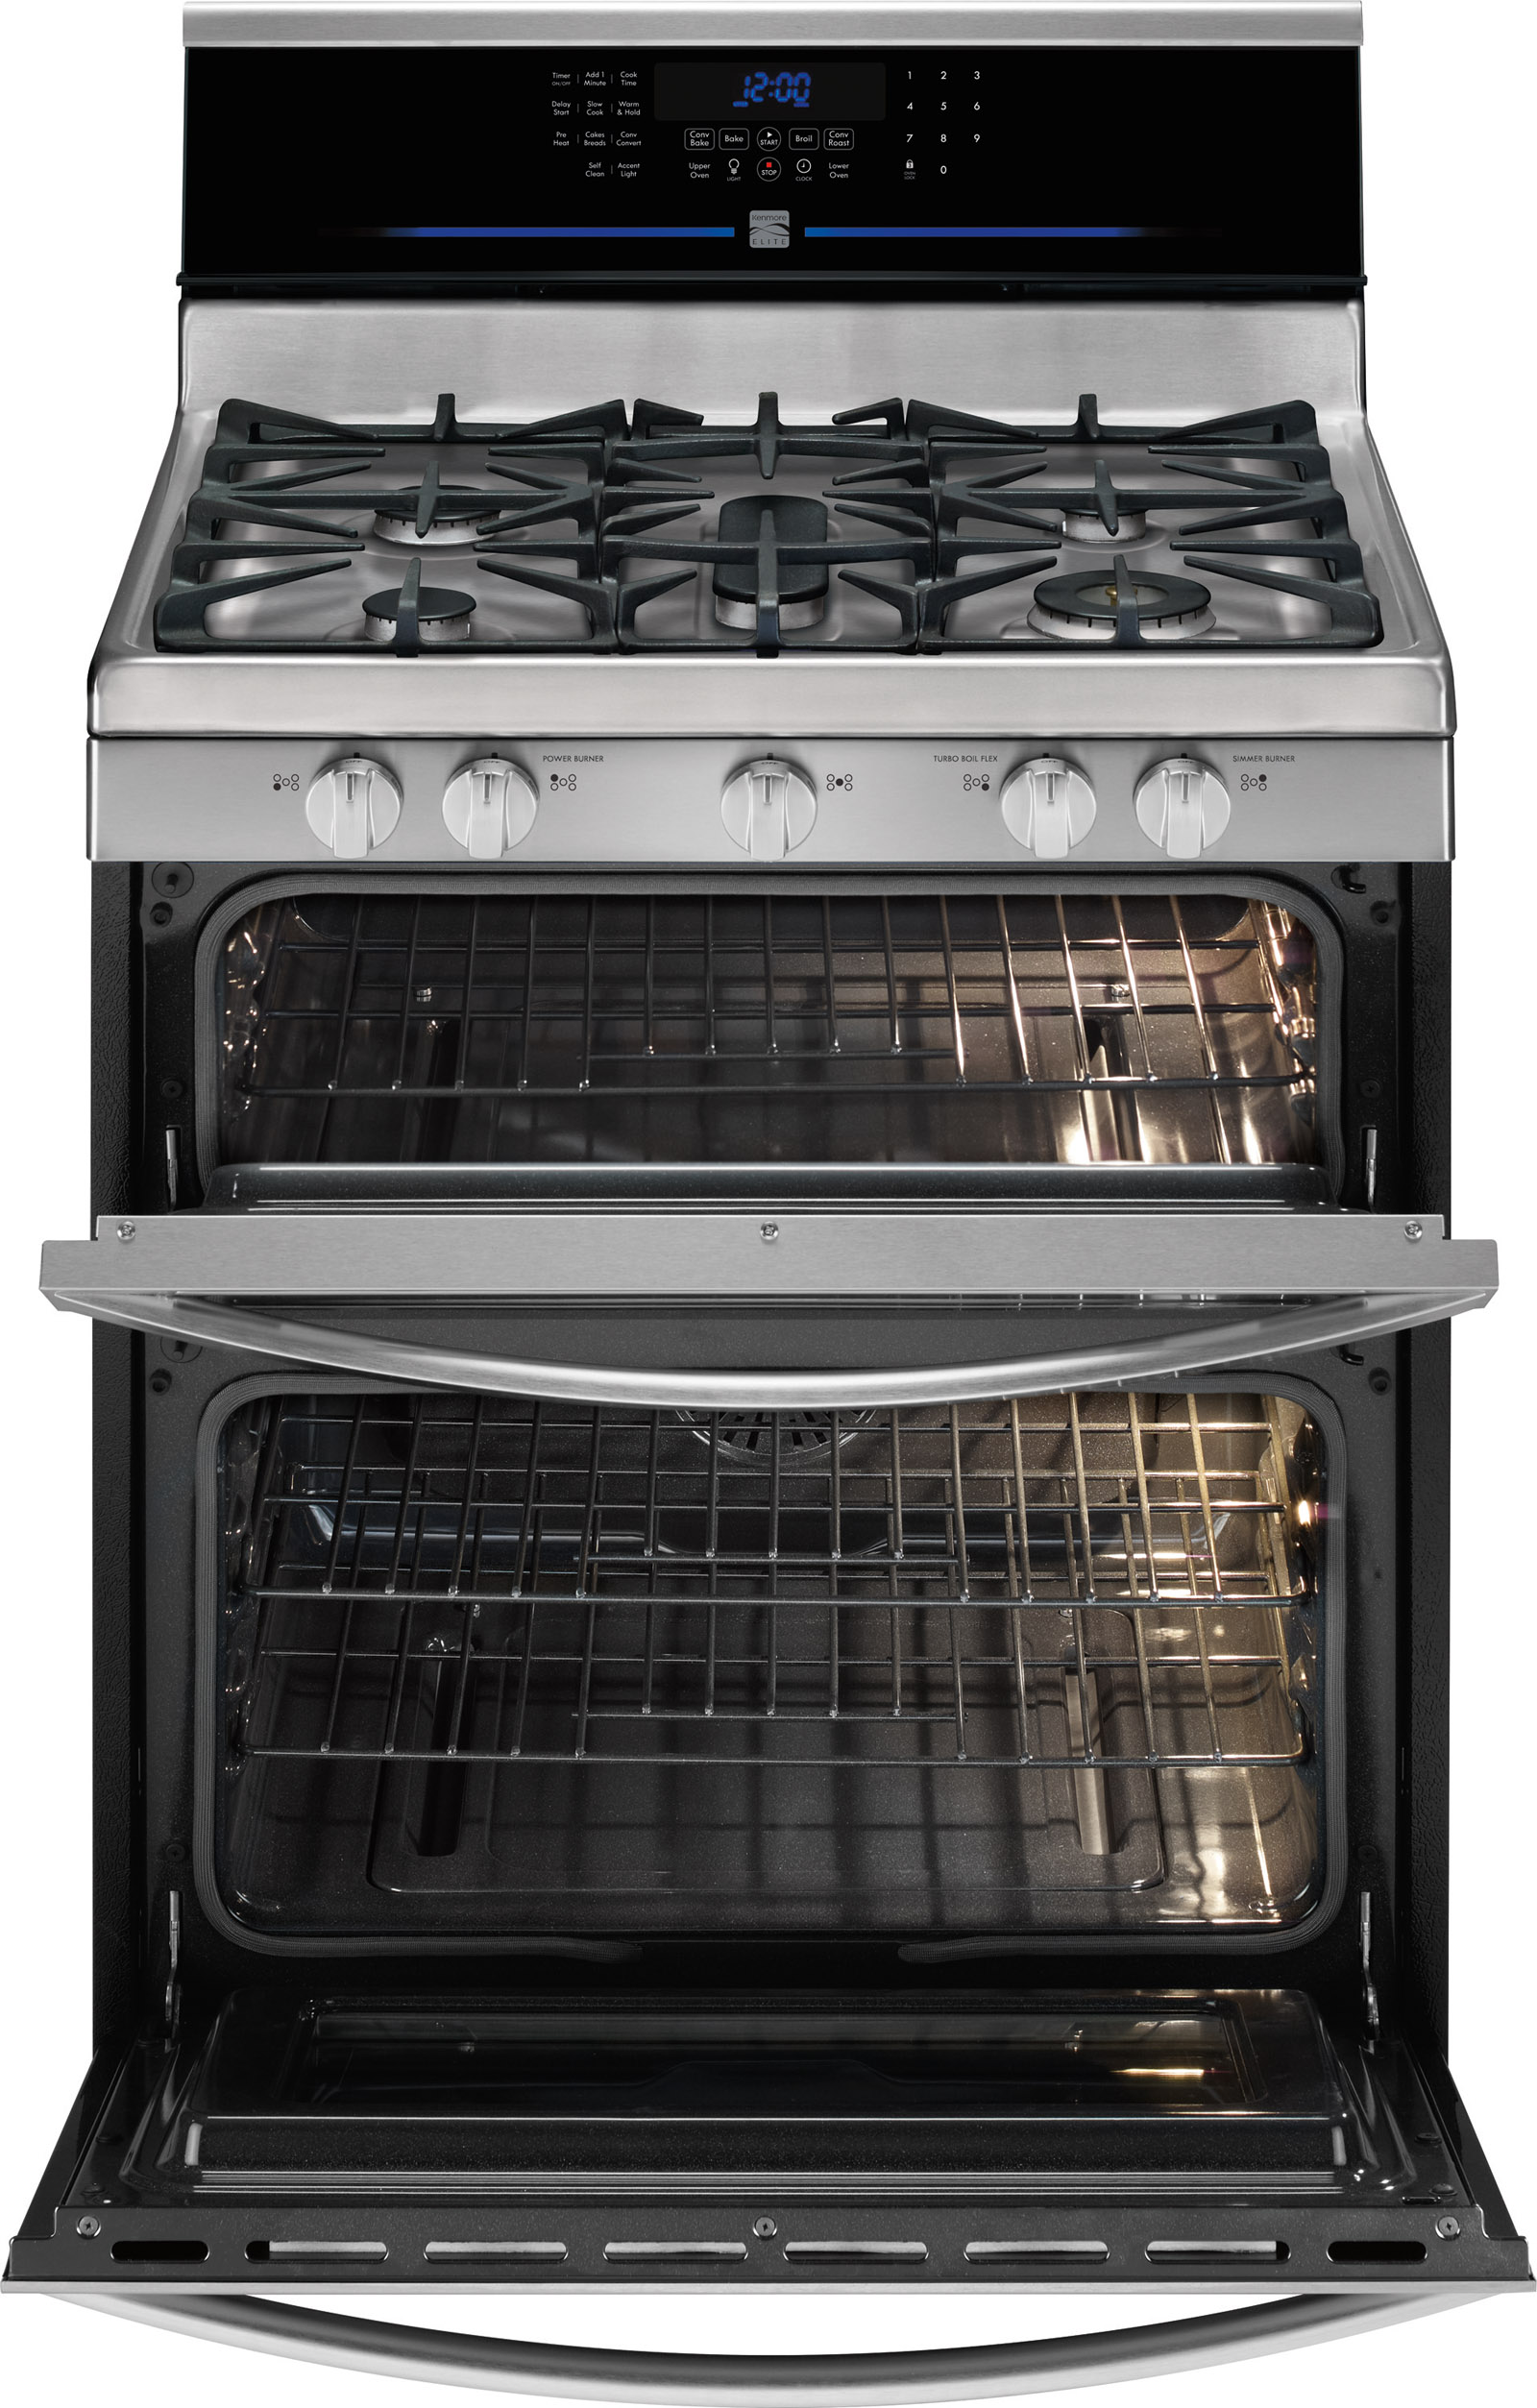 Kenmore Elite 78153 5.9 cu. ft. Double-Oven Gas Range - Stainless Steel